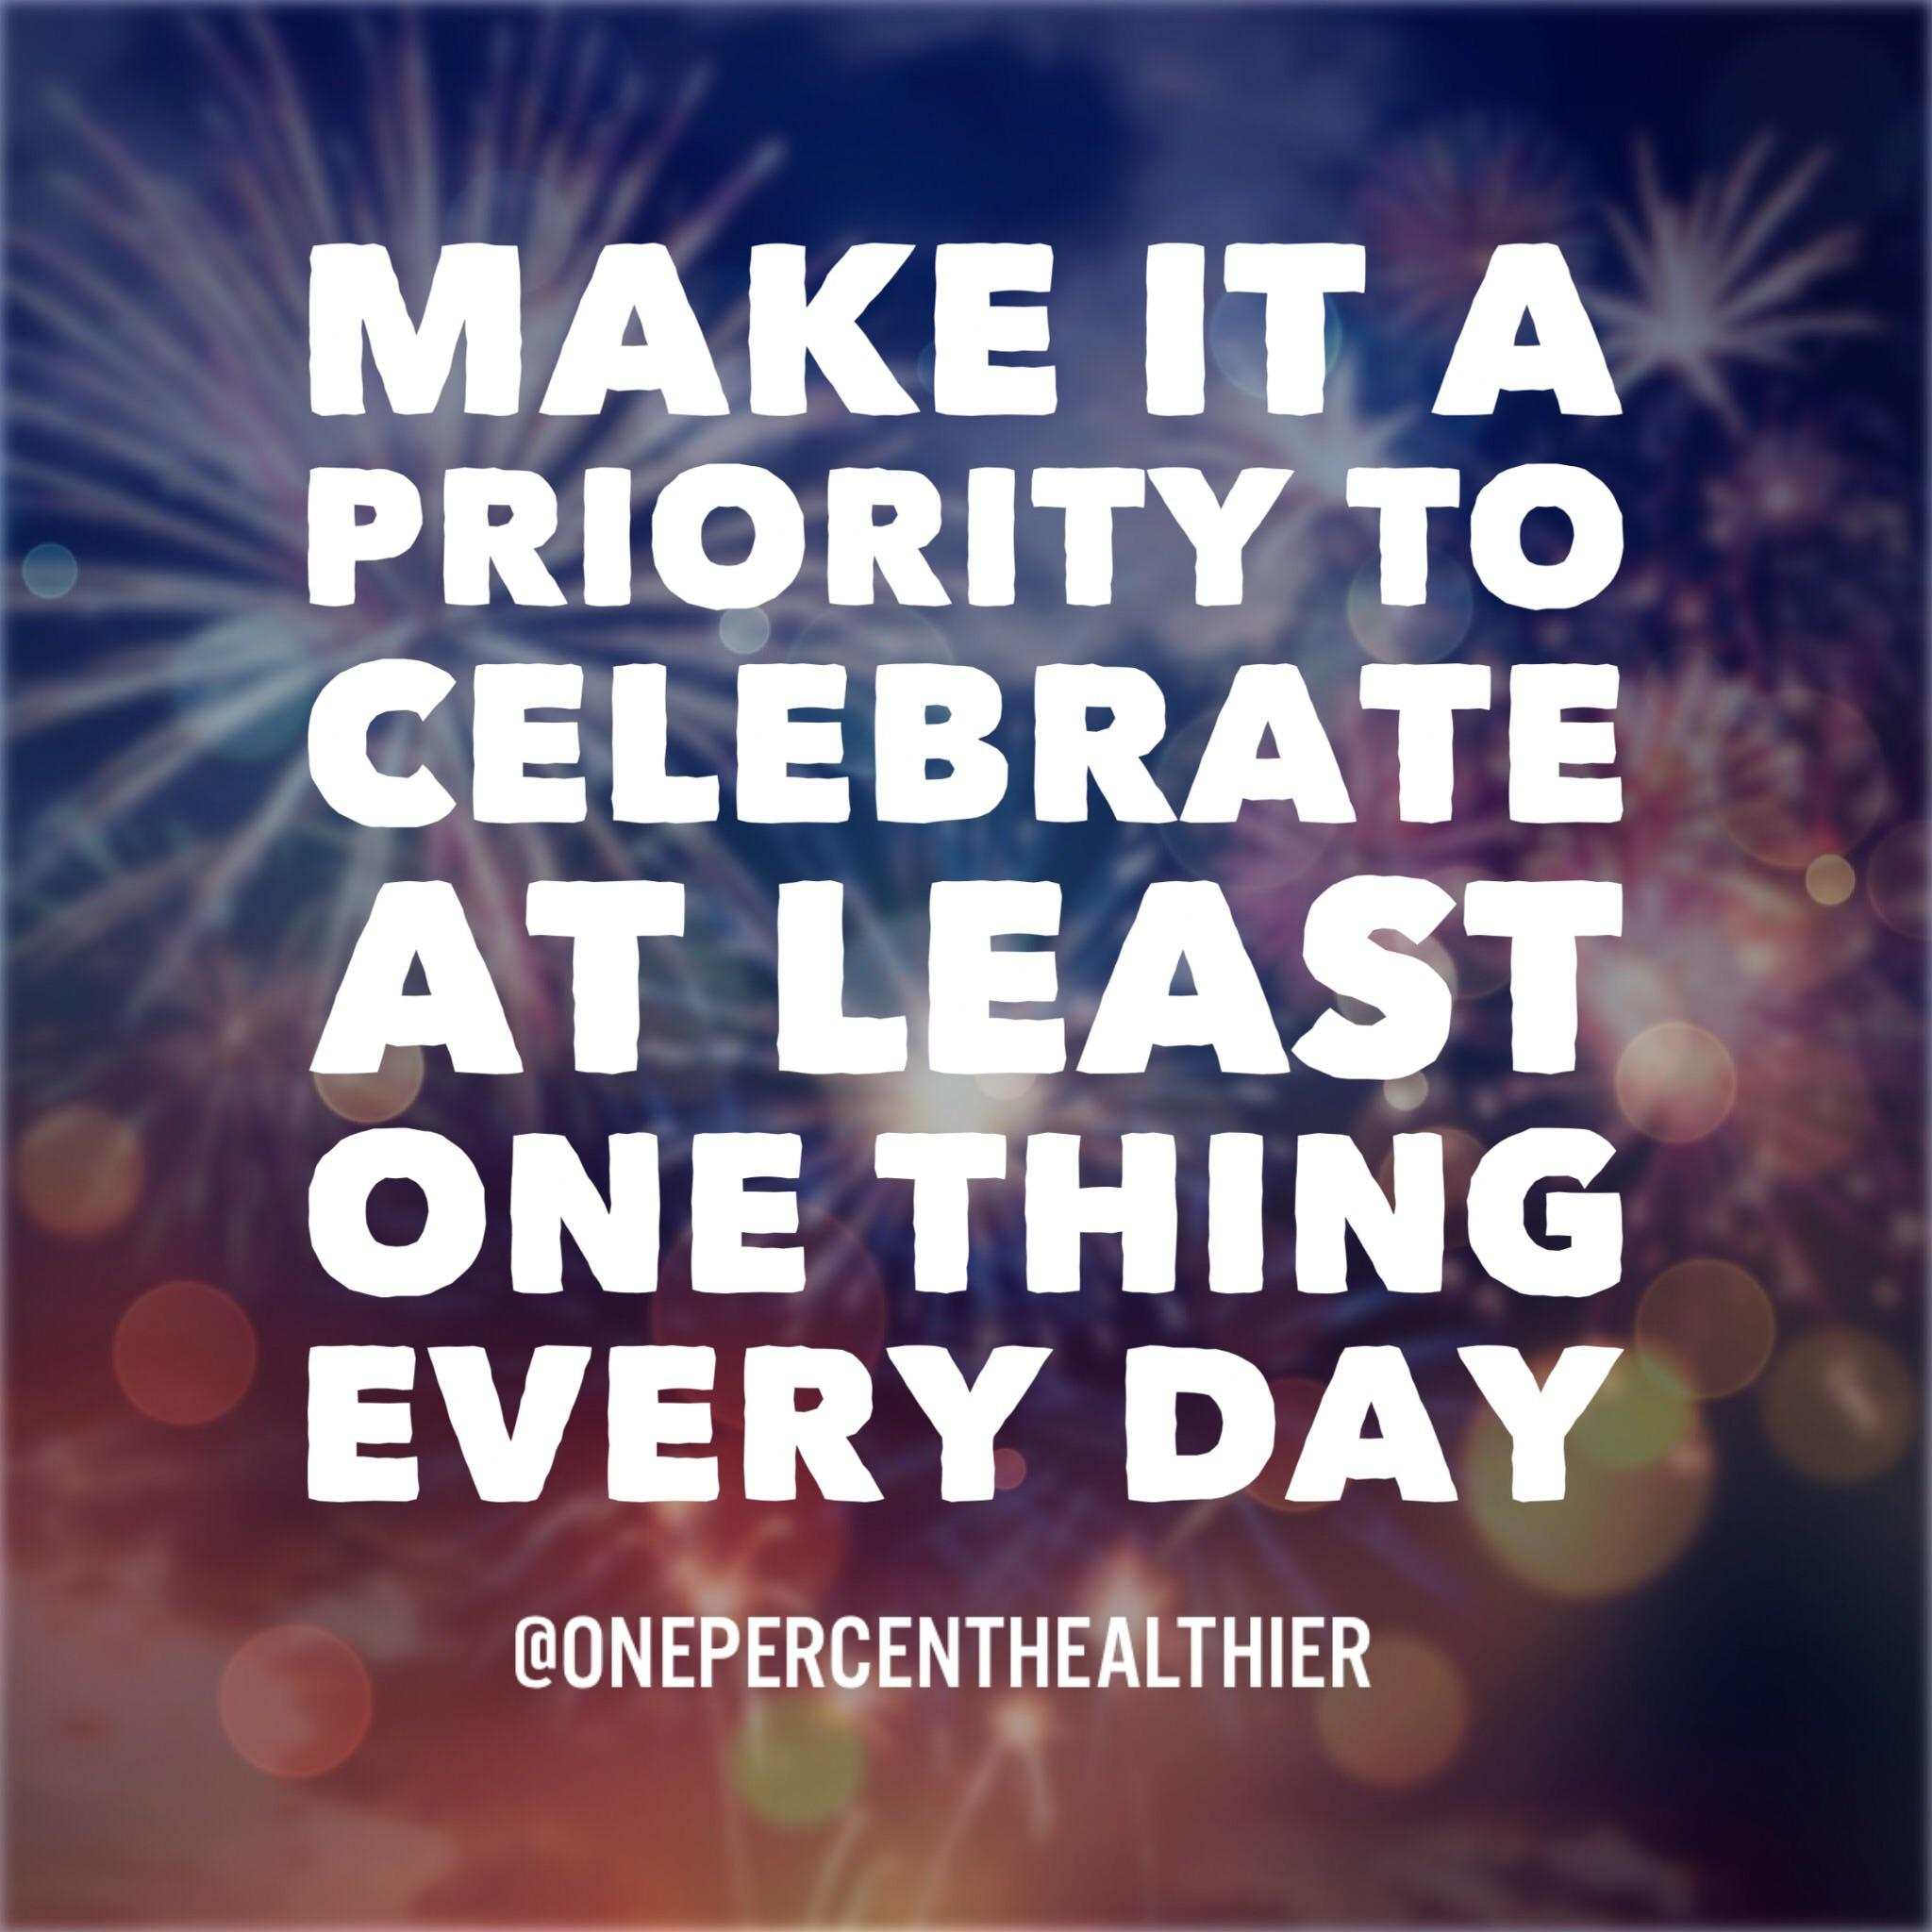 [Image] Don't take the day for granted. Always time to celebrate something!